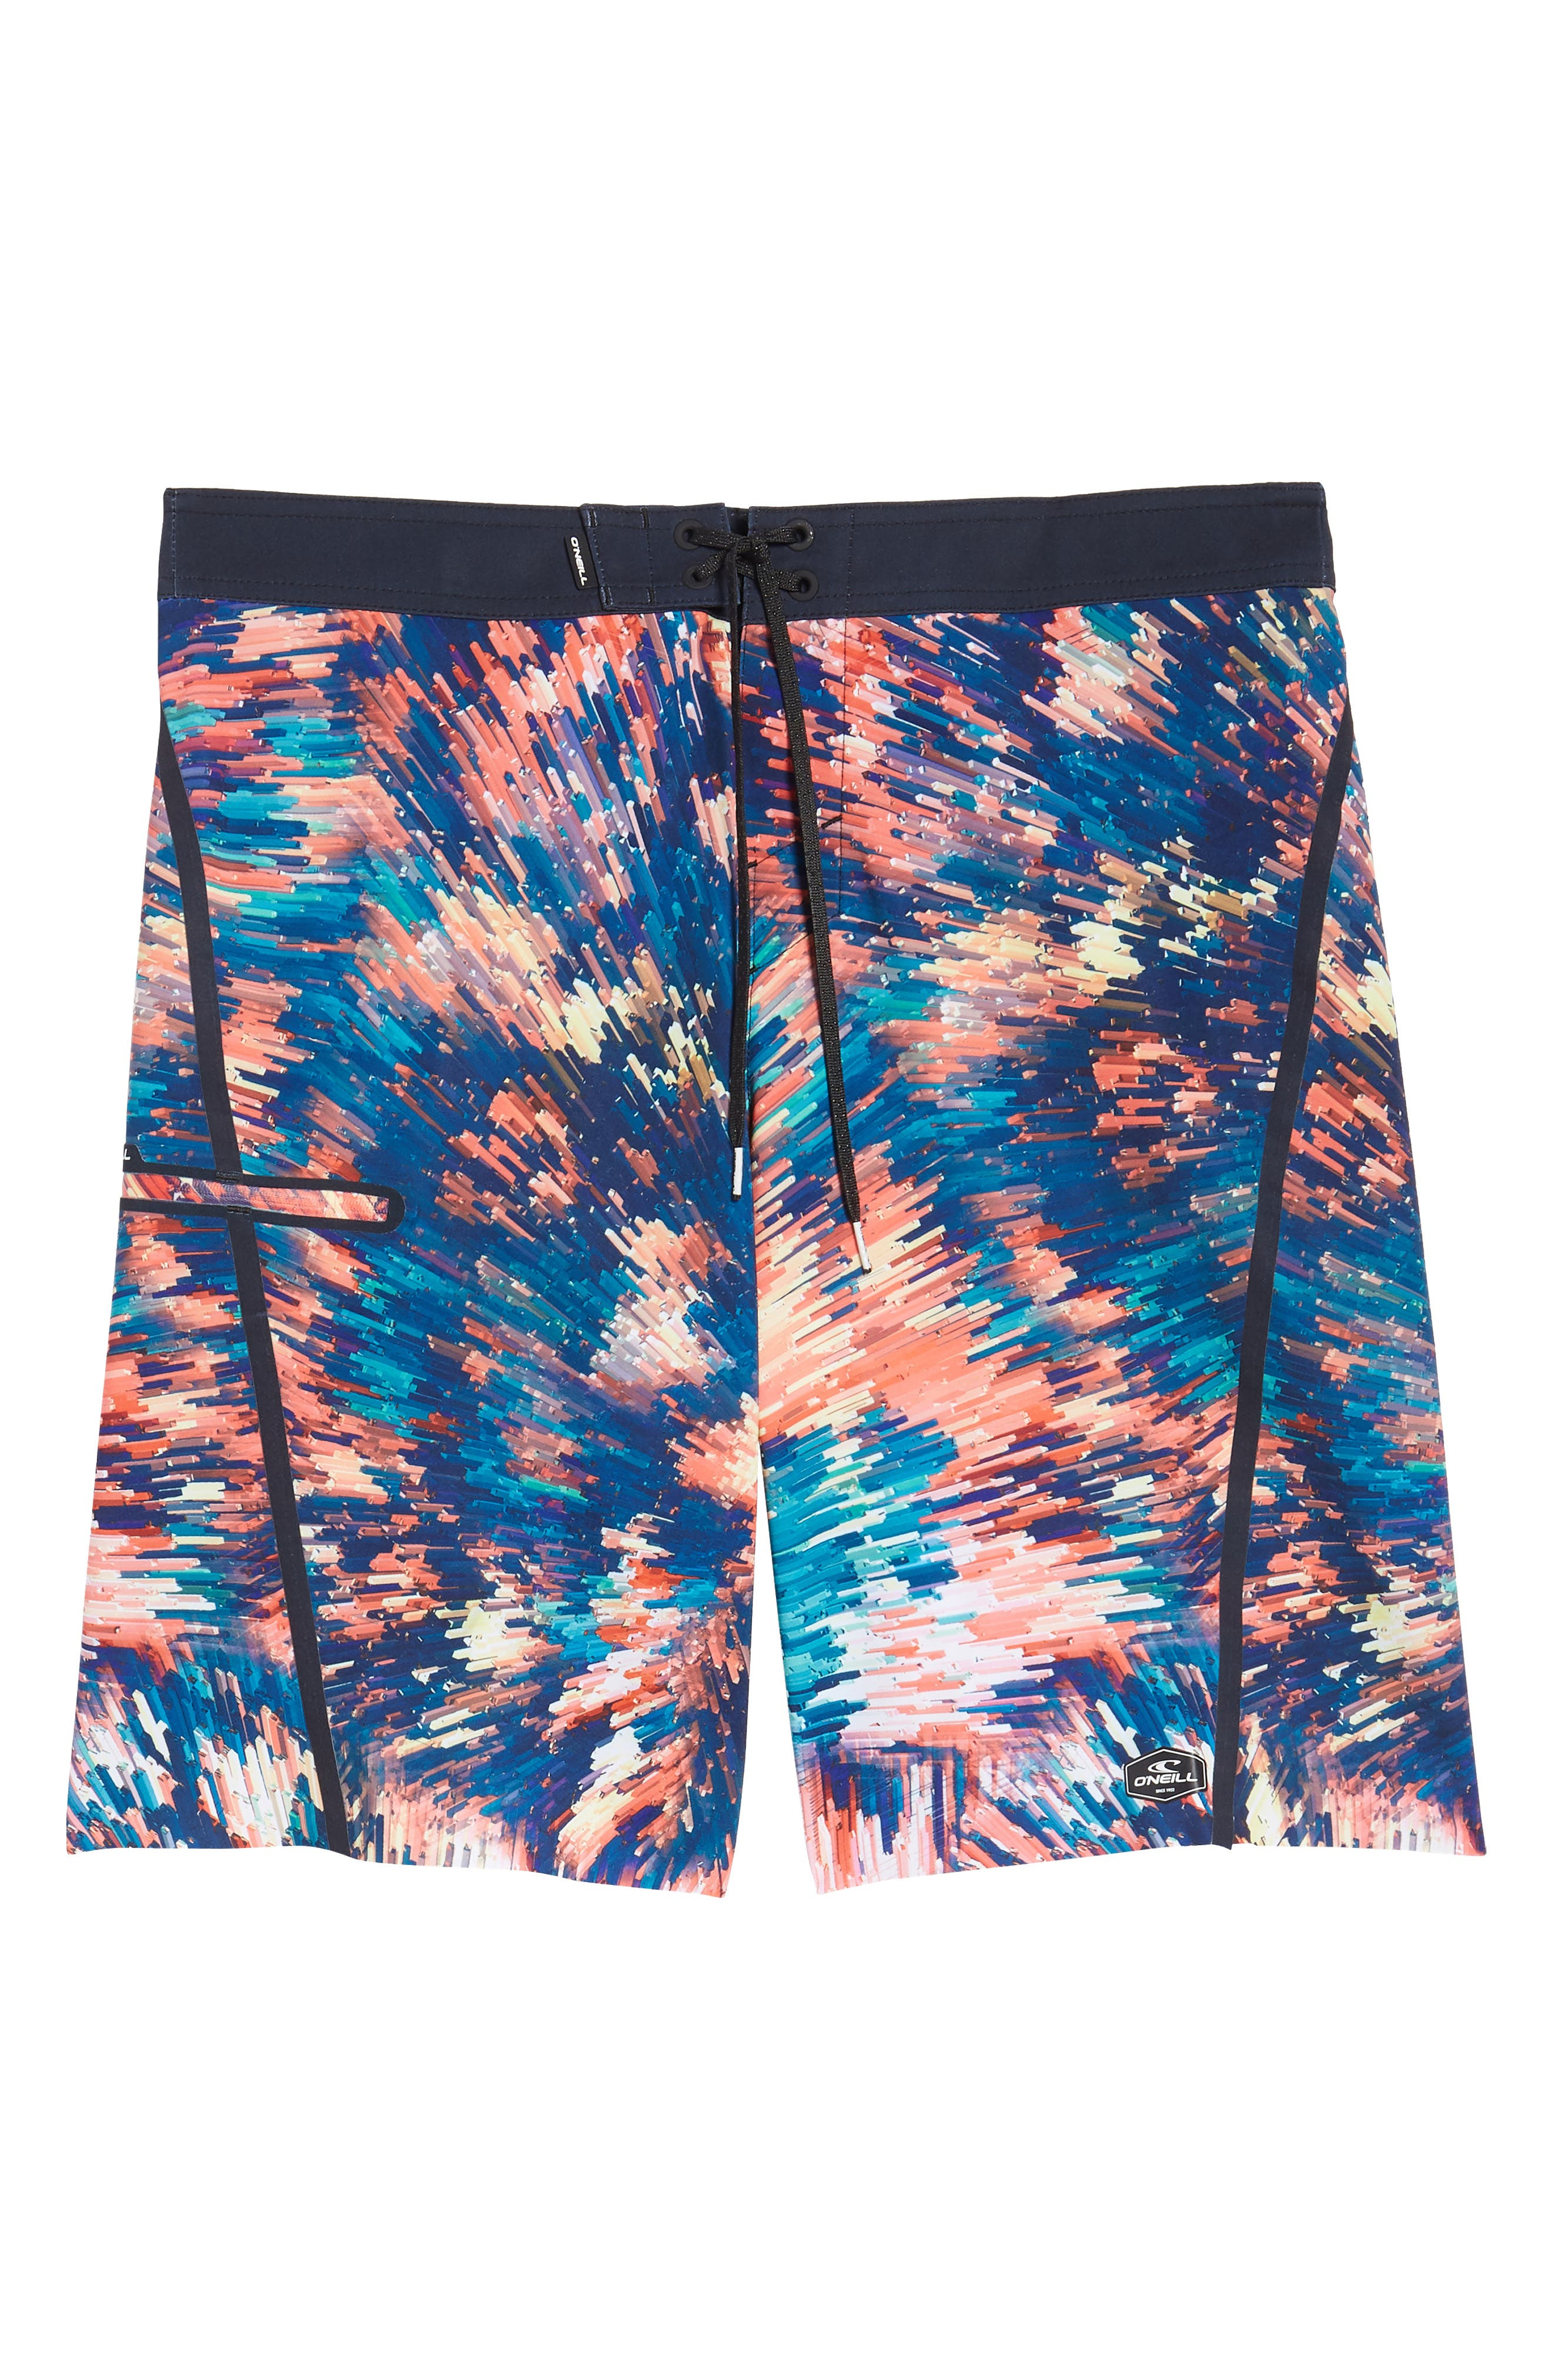 Hyperfreak Crystalize Board Shorts,                             Alternate thumbnail 6, color,                             950